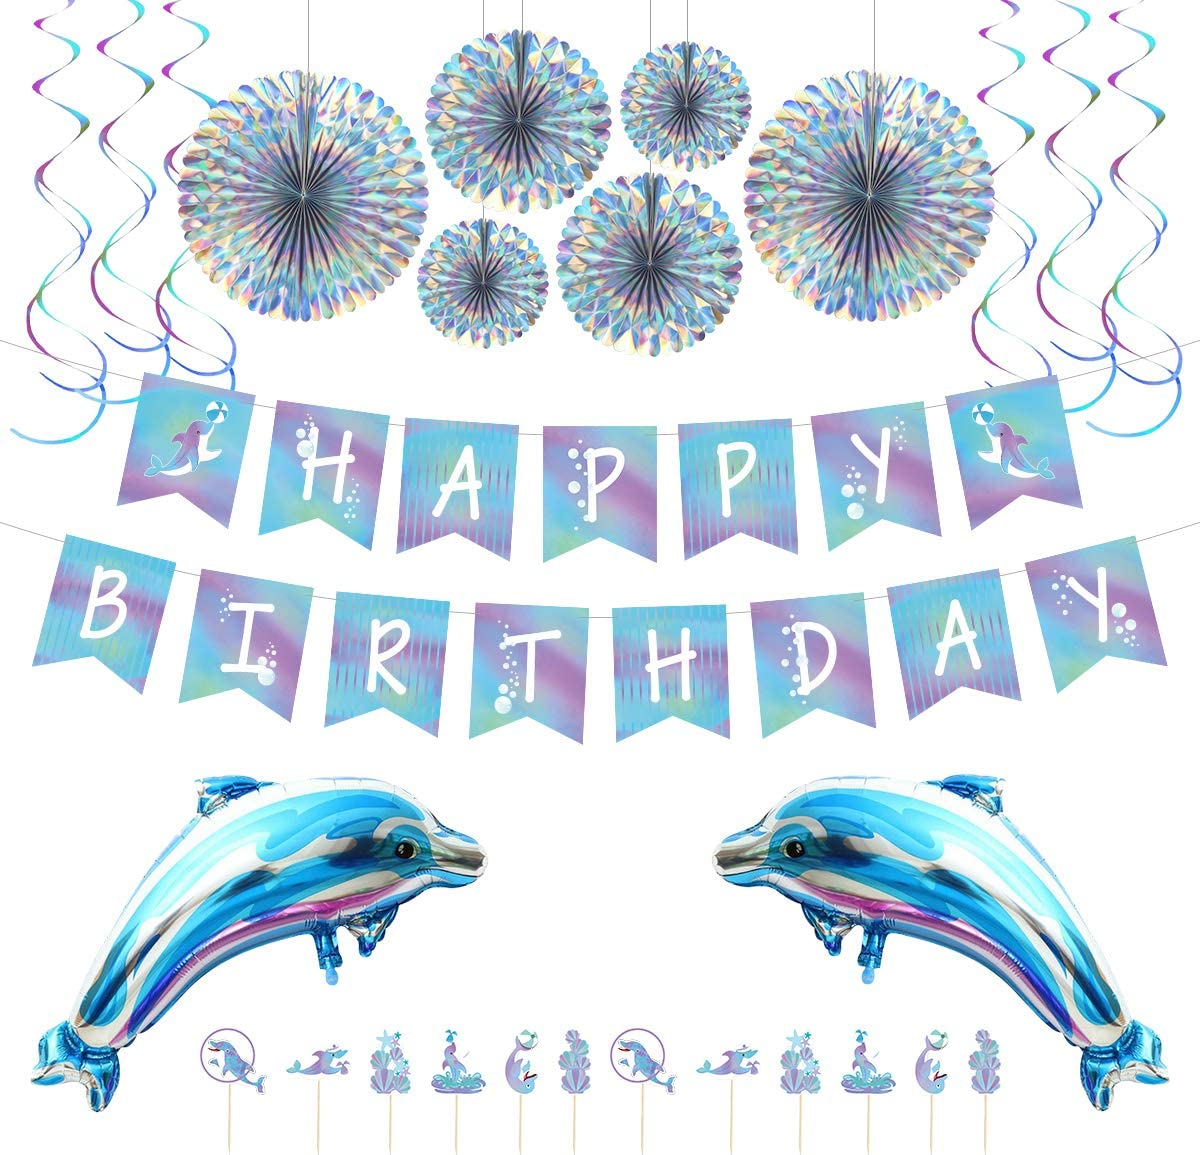 Birthday Party Decoration Dolphin Party Supplies Blue Themed Birthday Party Background Decoration Set Include Balloons, Spiral Charms, Paper Fans, Cupcake Toppers, Happy Birthday Banner Birthday Party Supplies